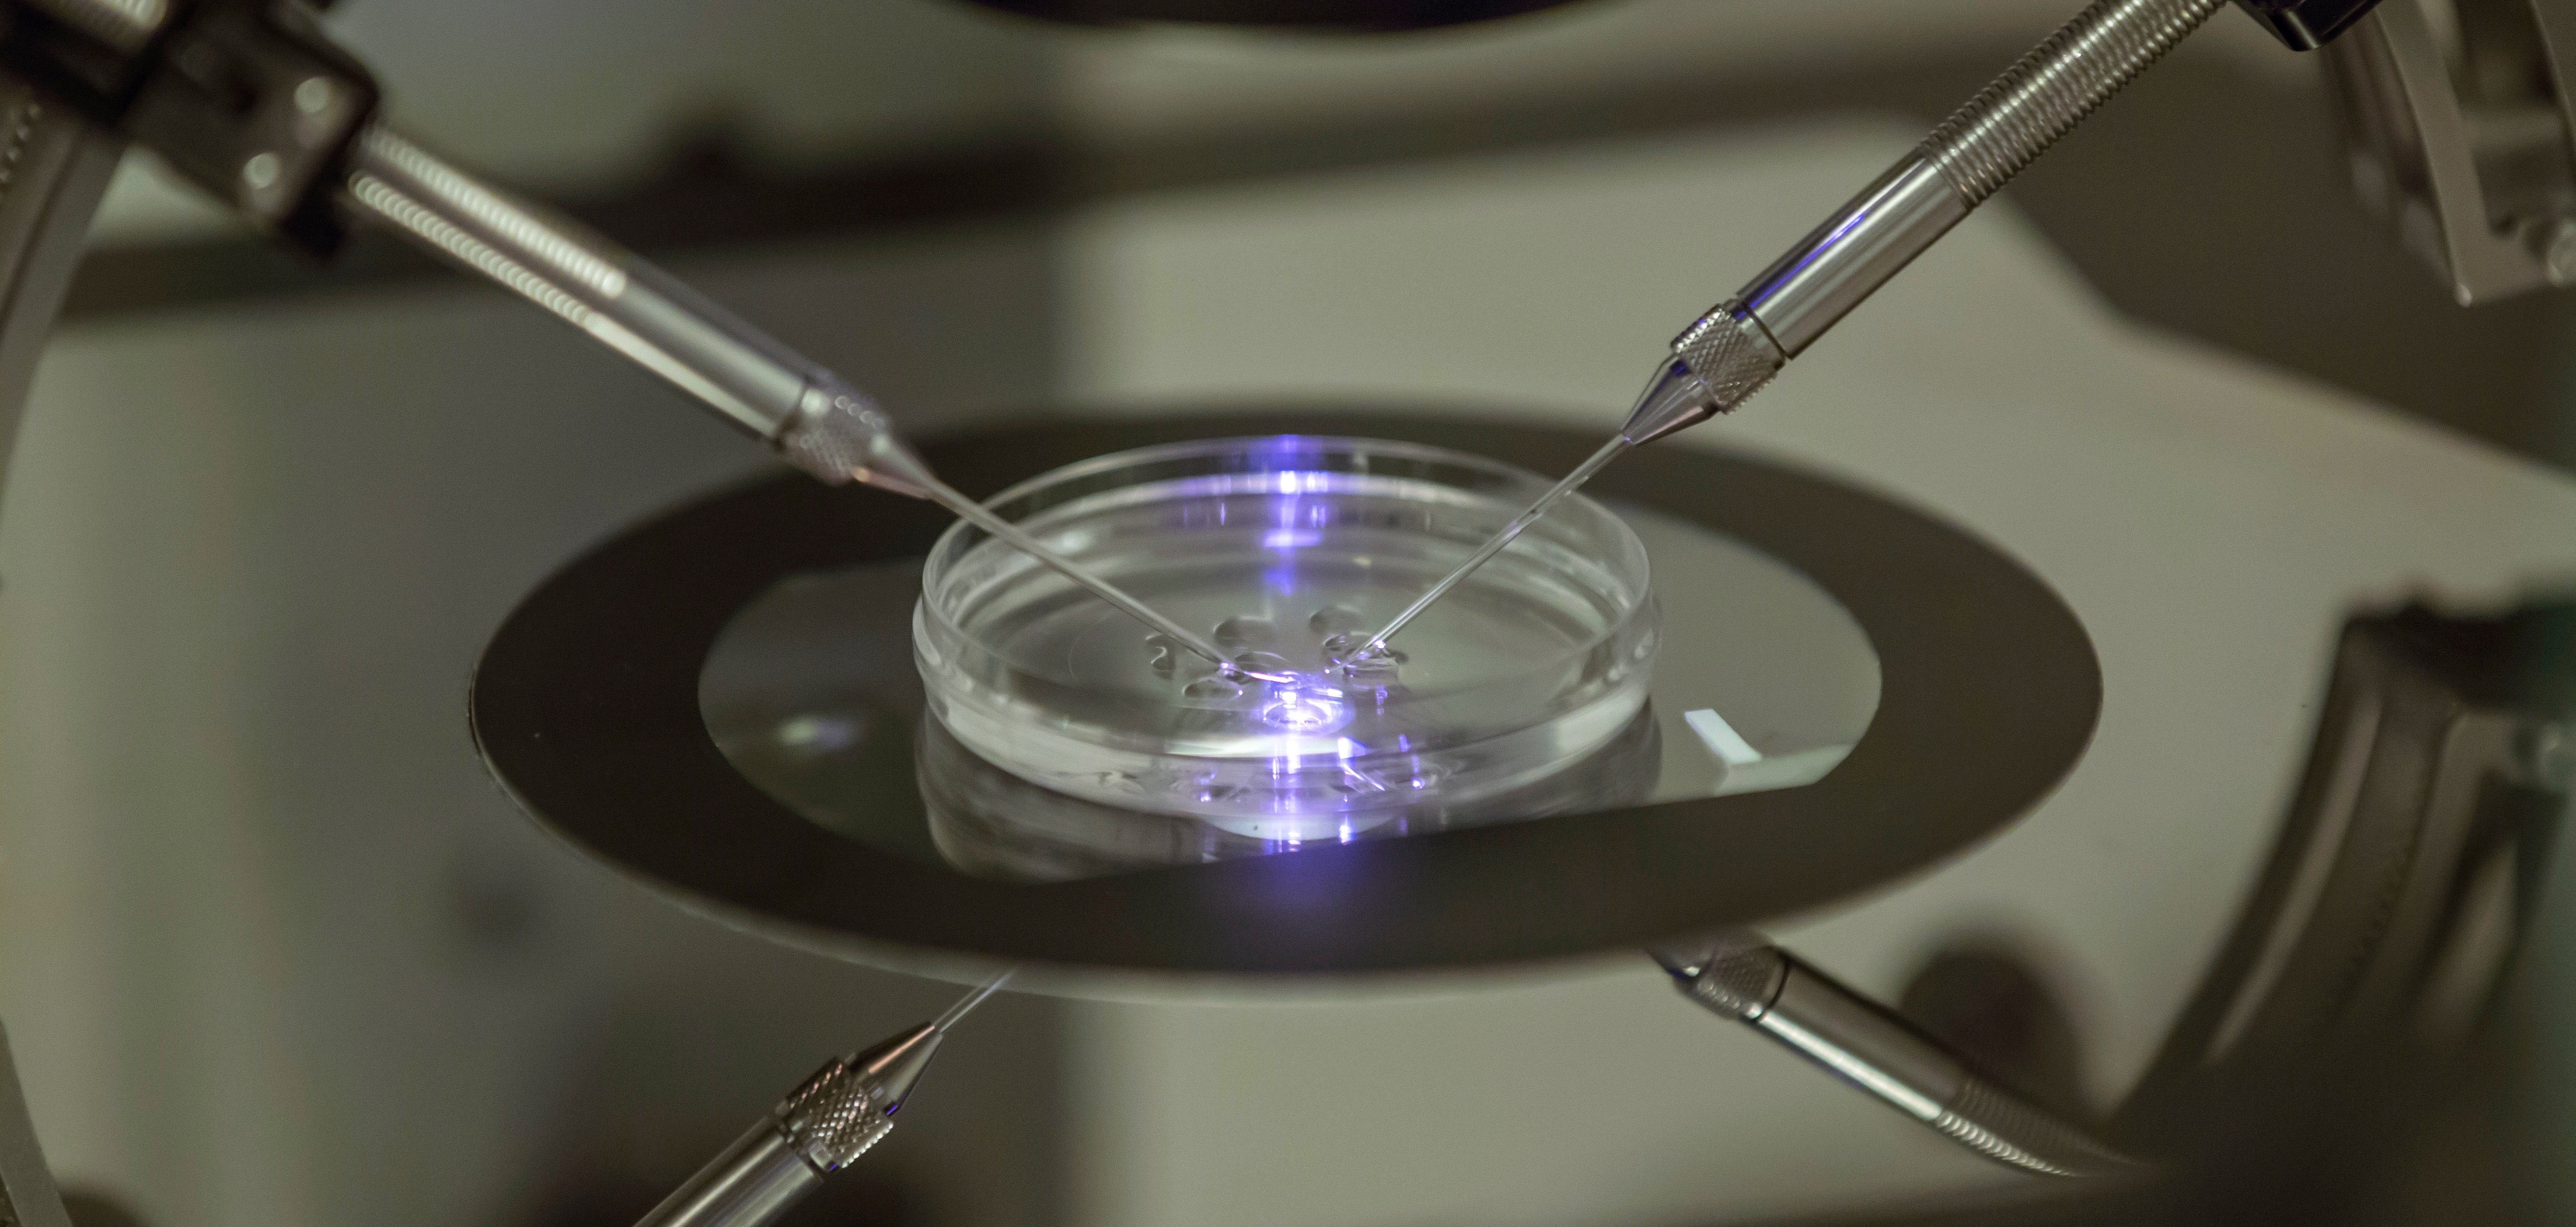 What Should Parents Do With Their Spare IVF Embryos?